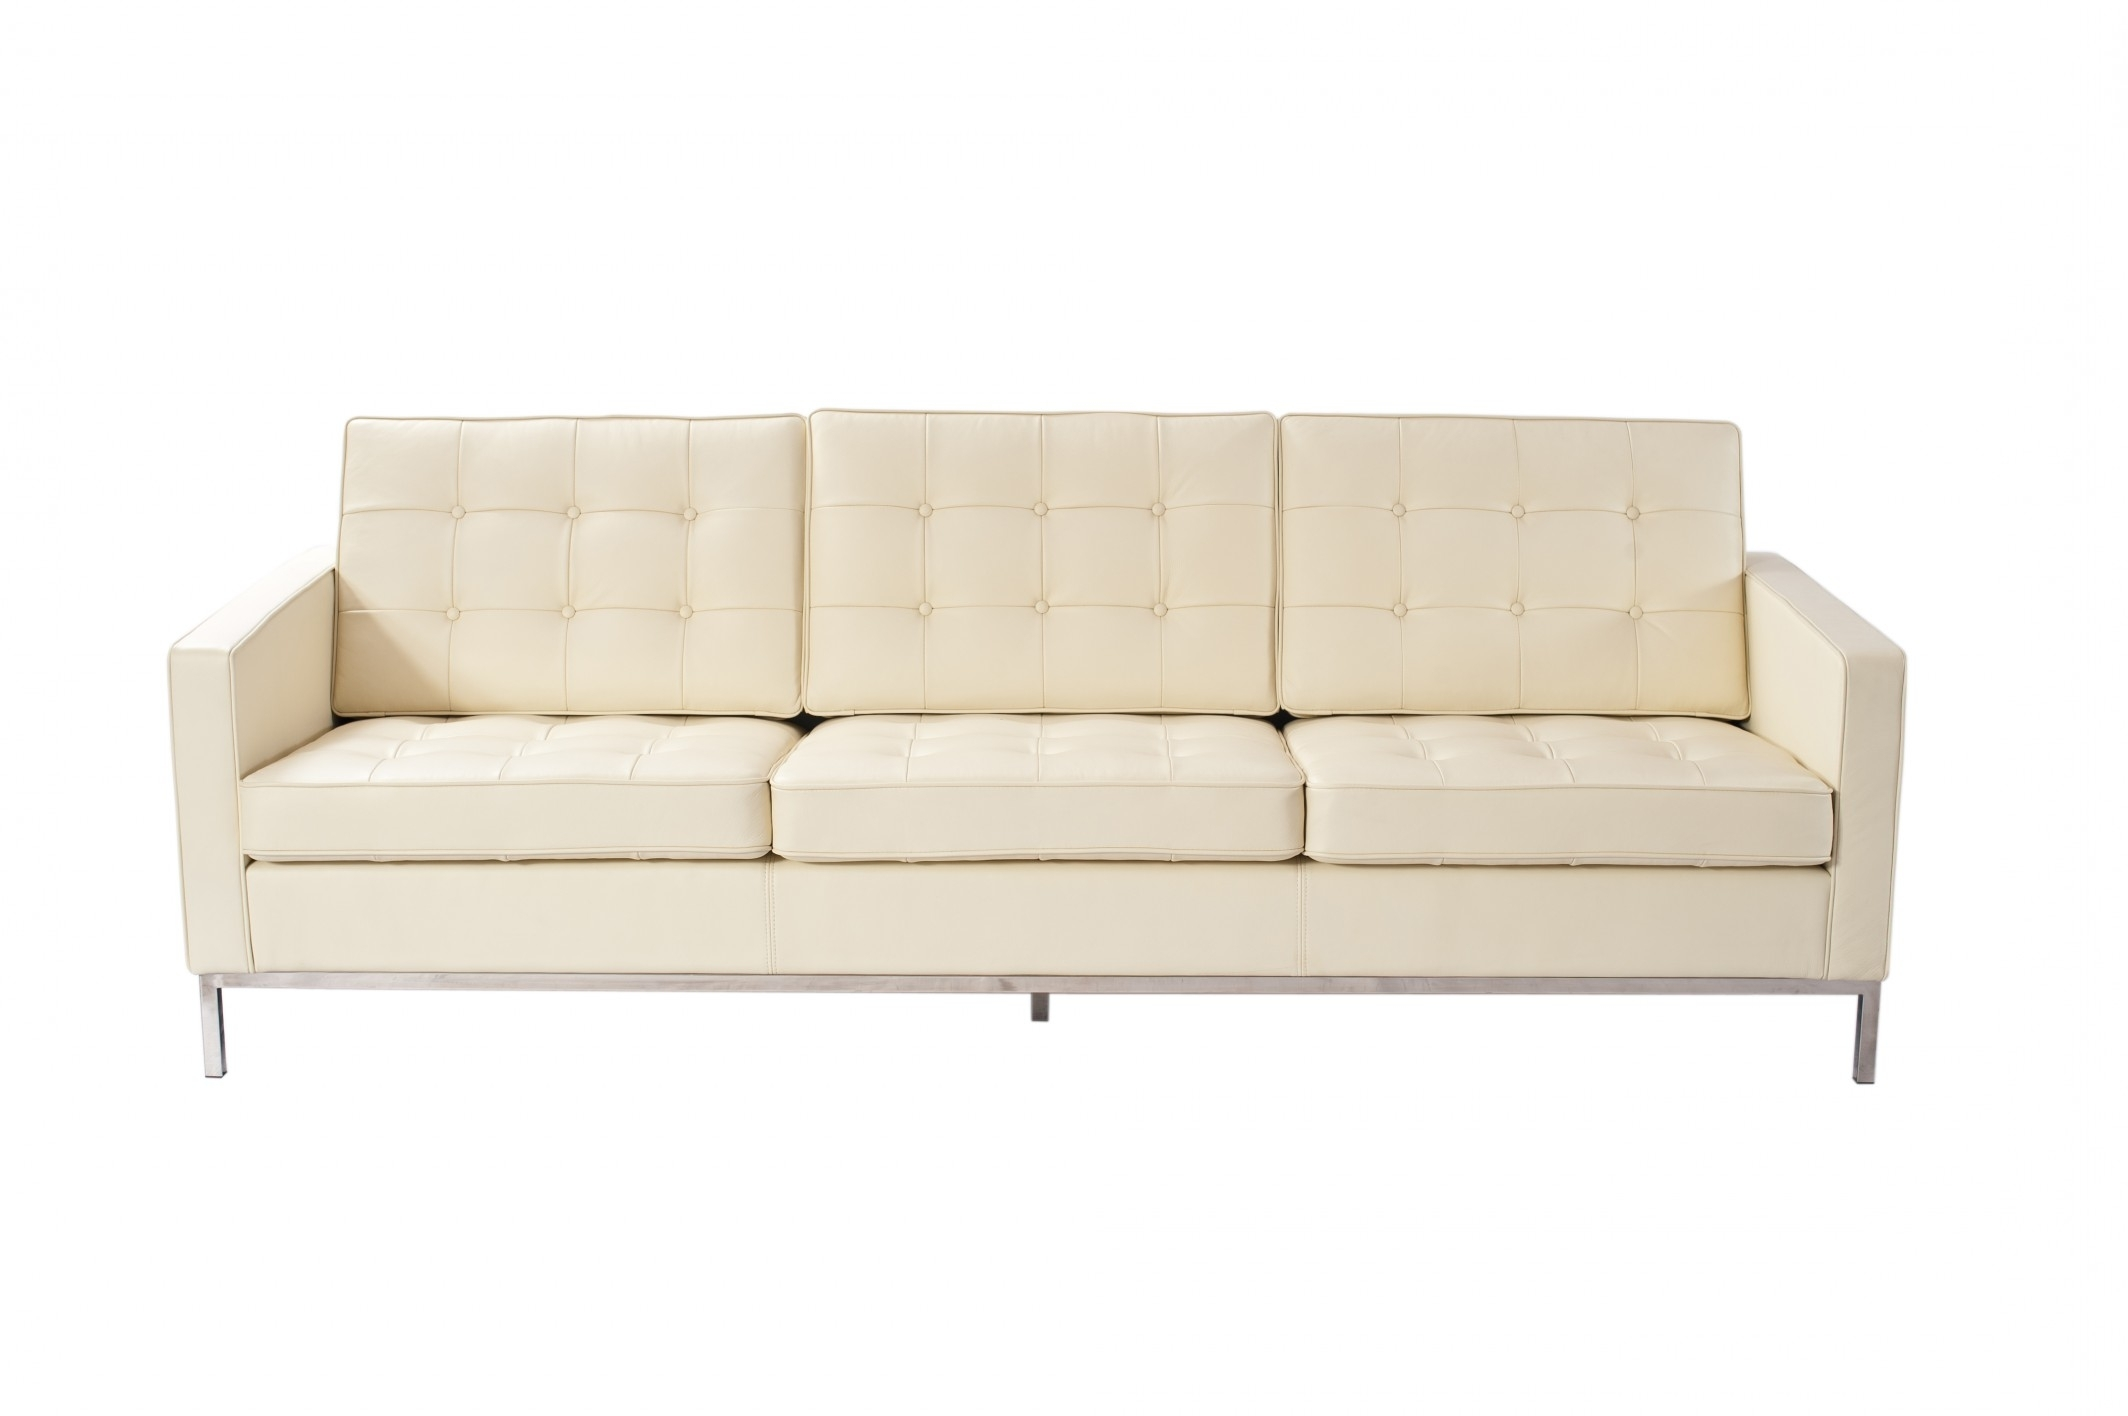 Current Florence Knoll Leather Sofas Pertaining To Fresh Florence Knoll Sofa Bed # (View 20 of 20)